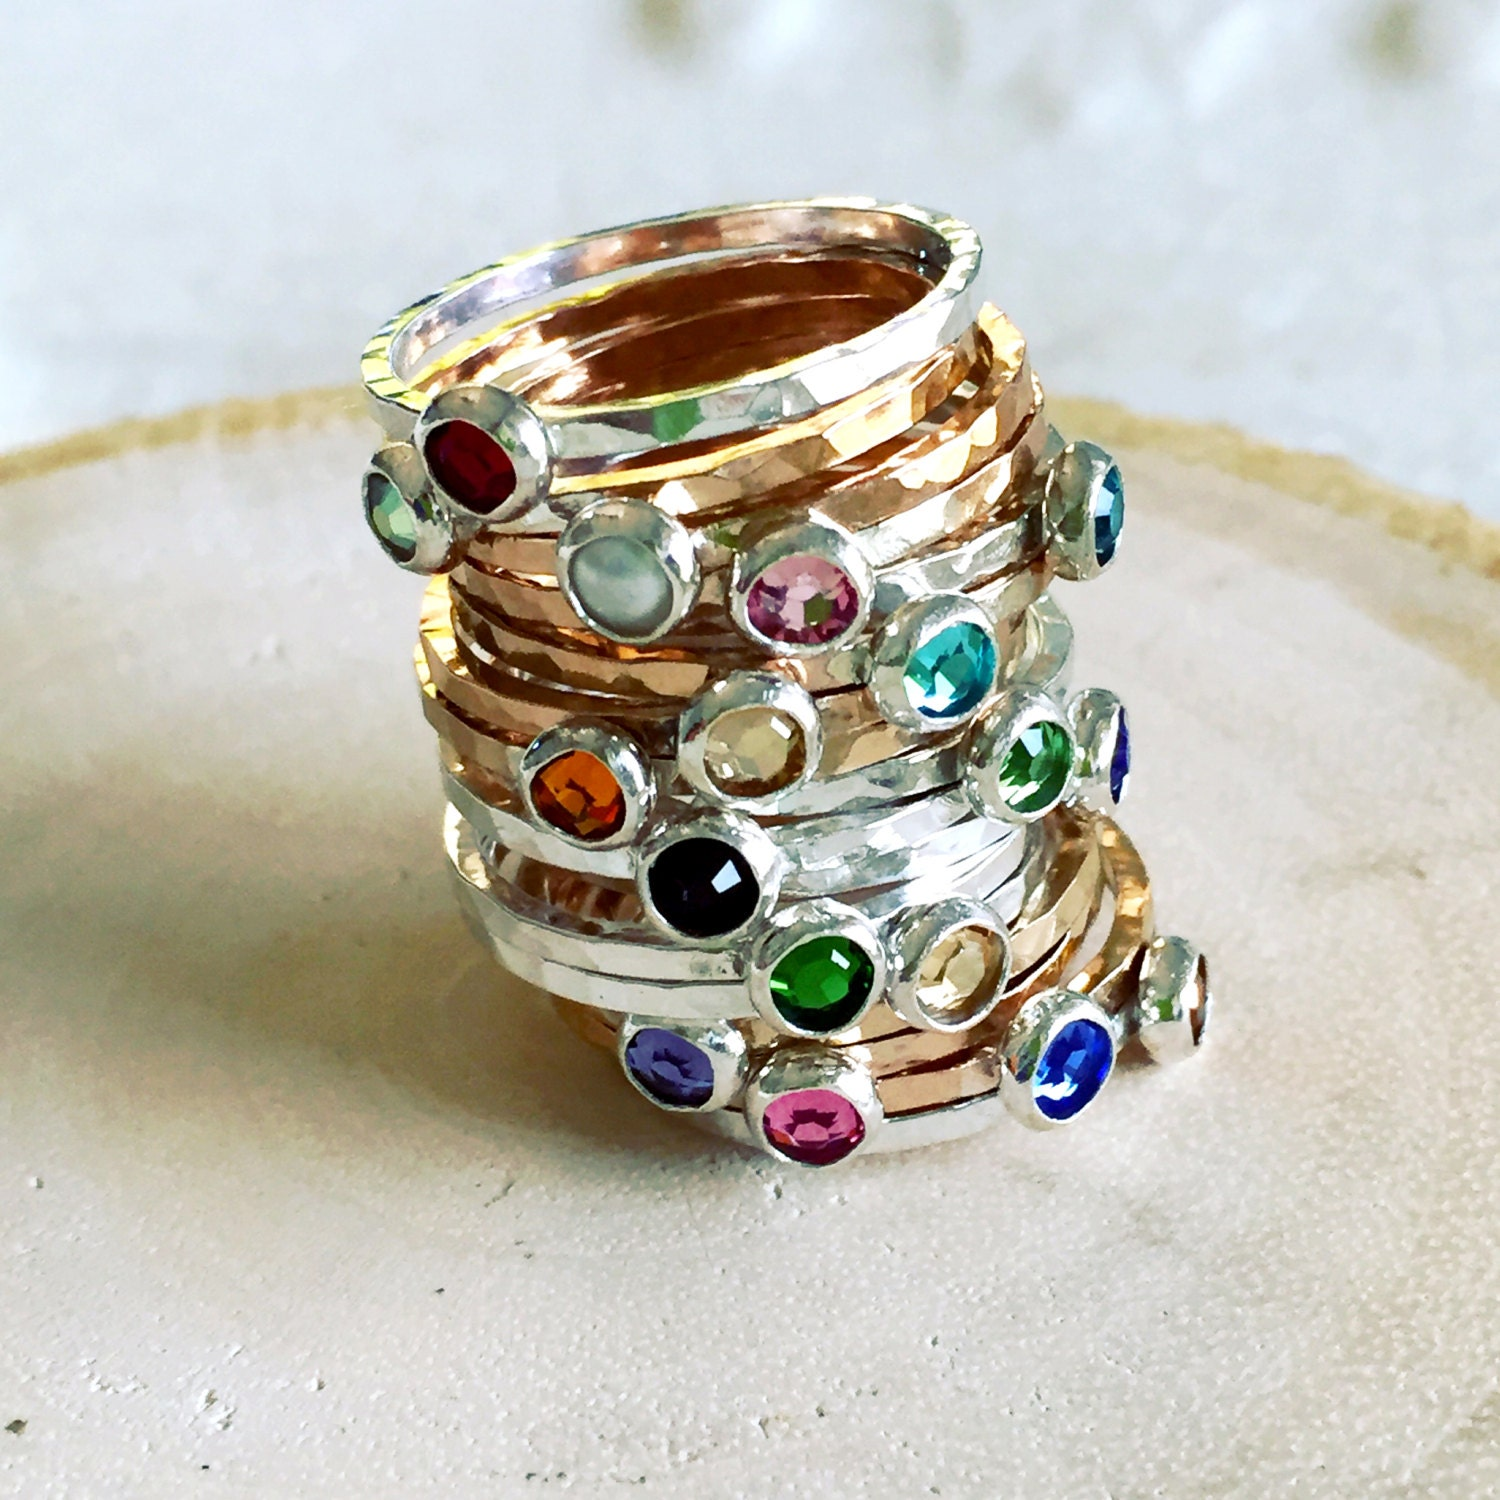 personalized birthstone rings new mom stacking rings. Black Bedroom Furniture Sets. Home Design Ideas